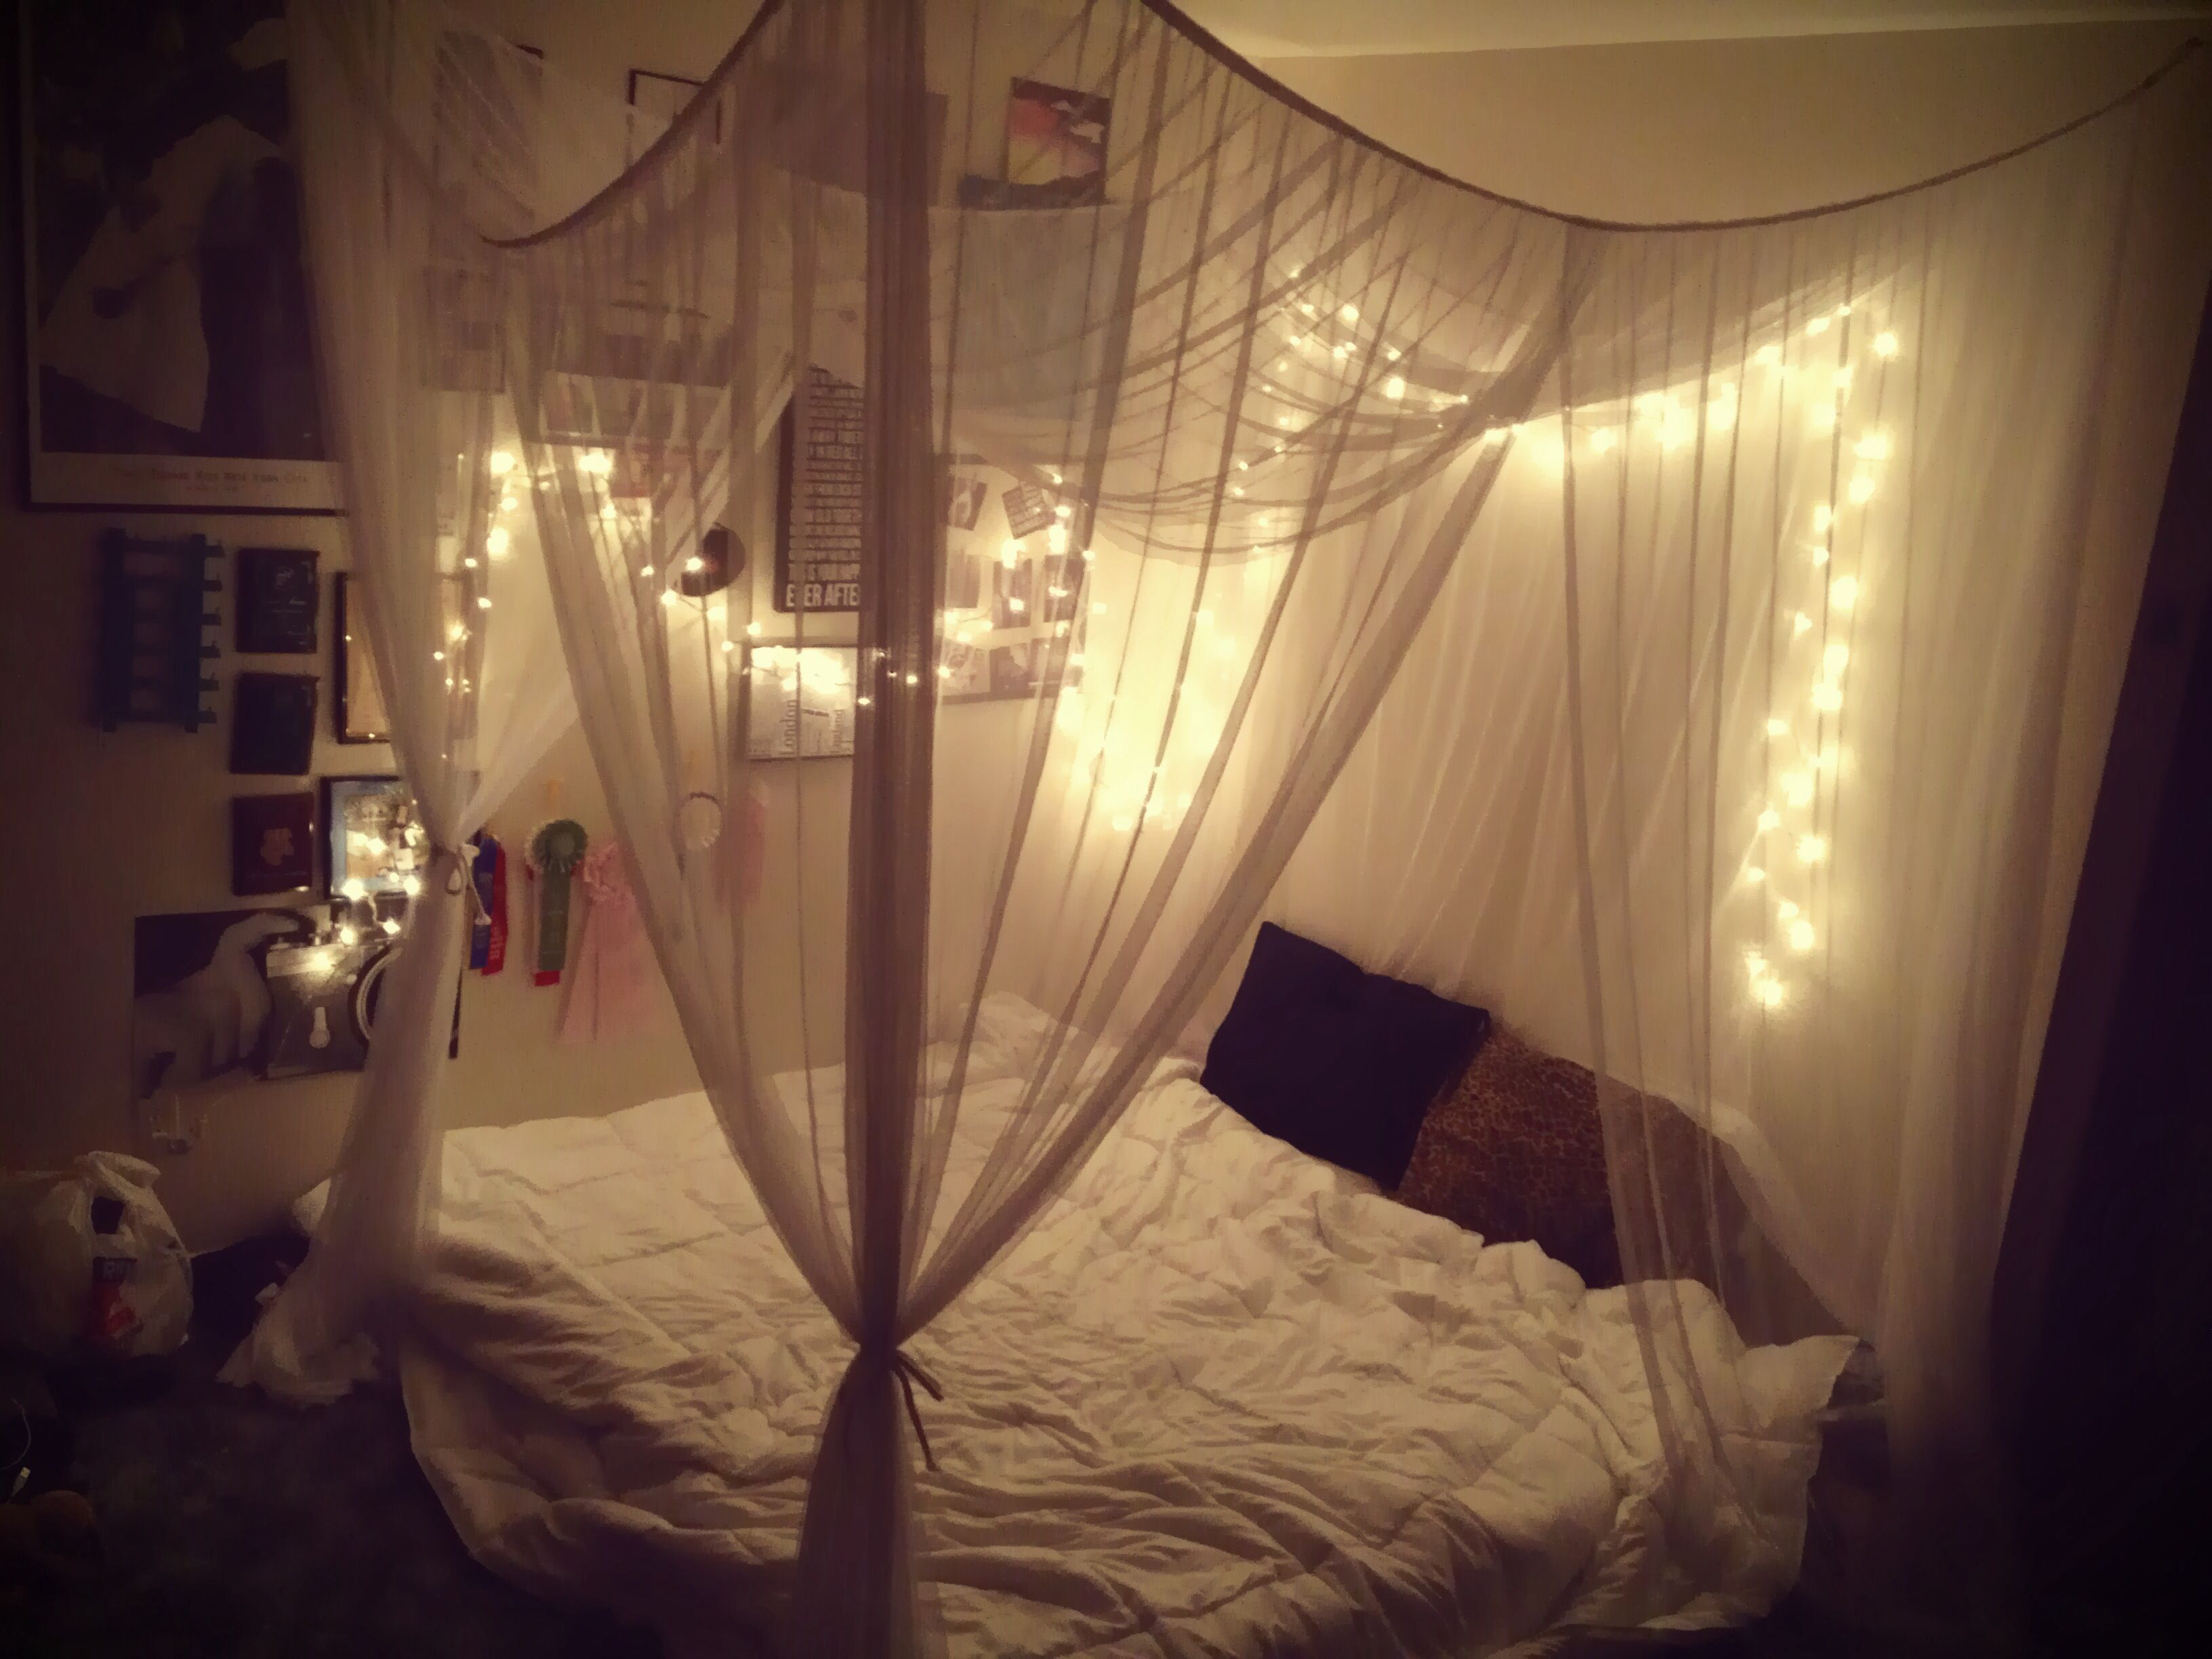 Tumblr Bed Ideas Bedroom With Lighted Canopy Tumblr Bedroom Canopy Twinkle